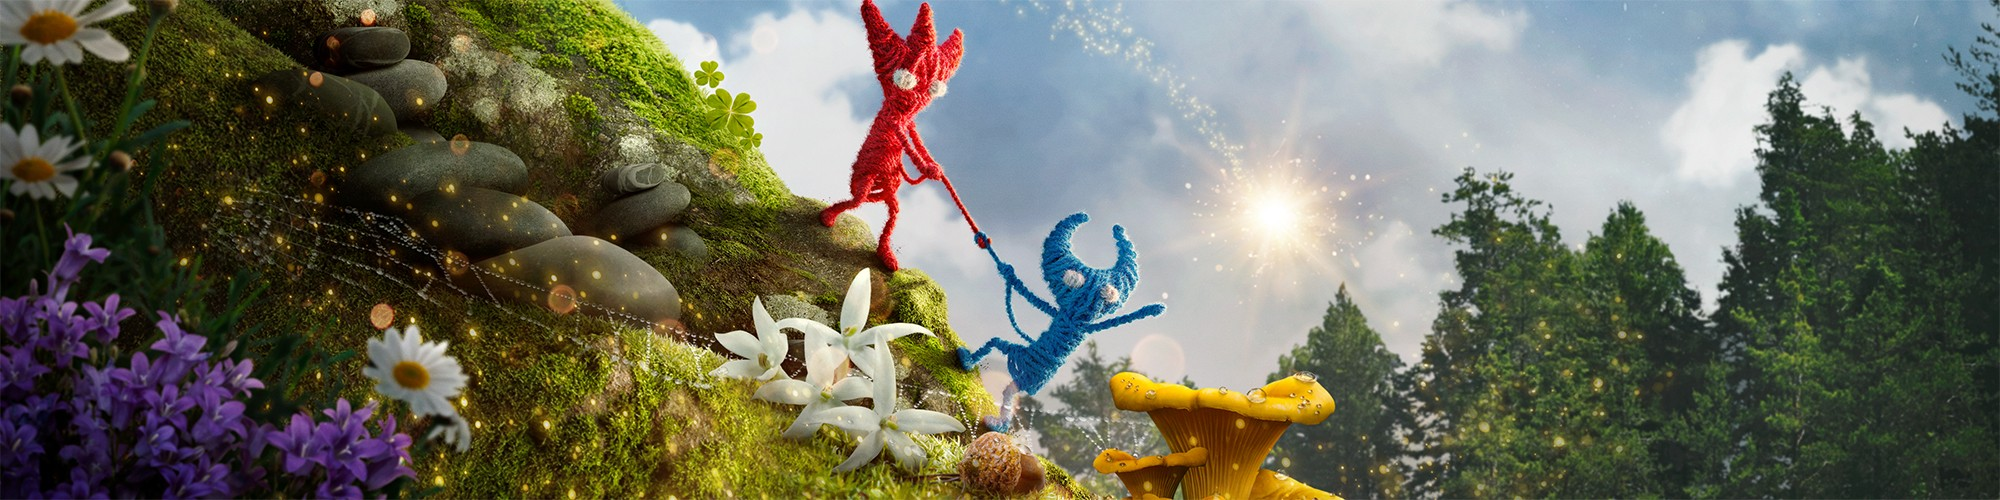 Unravel Two technical specifications for PC